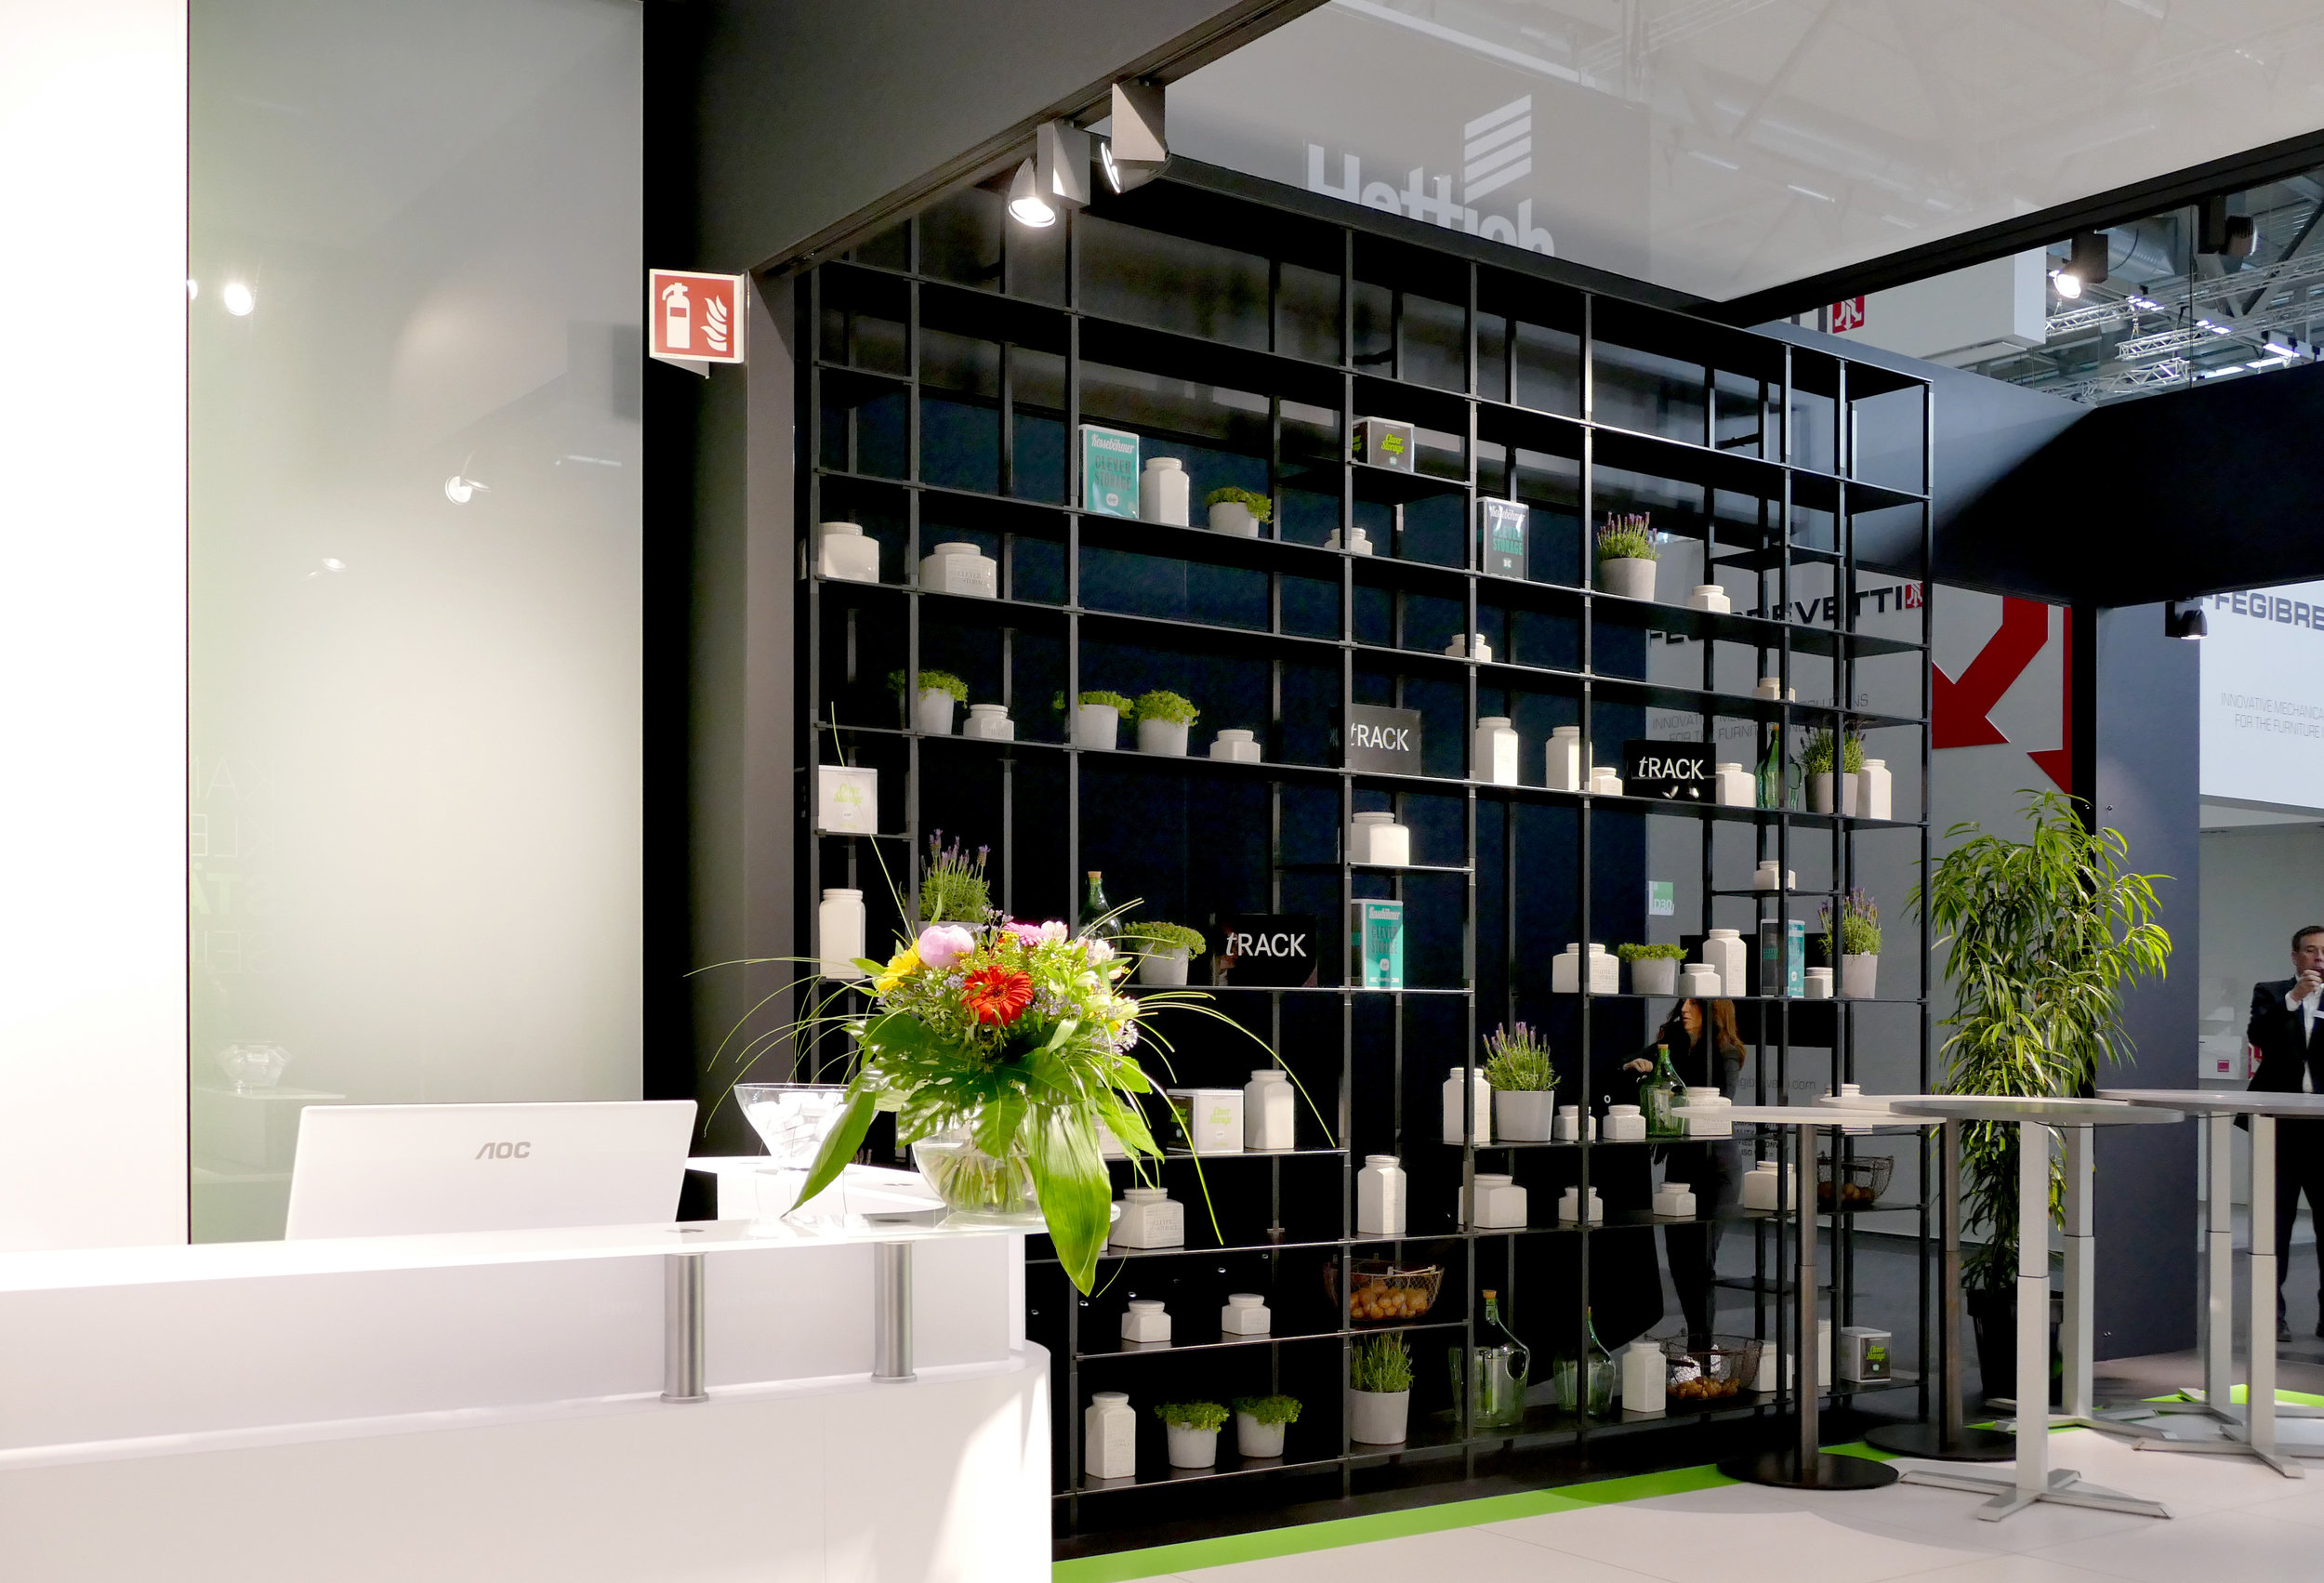 tRACK by VOLUME K - tRACK is the newest convertible shelving system that can be totally customized.